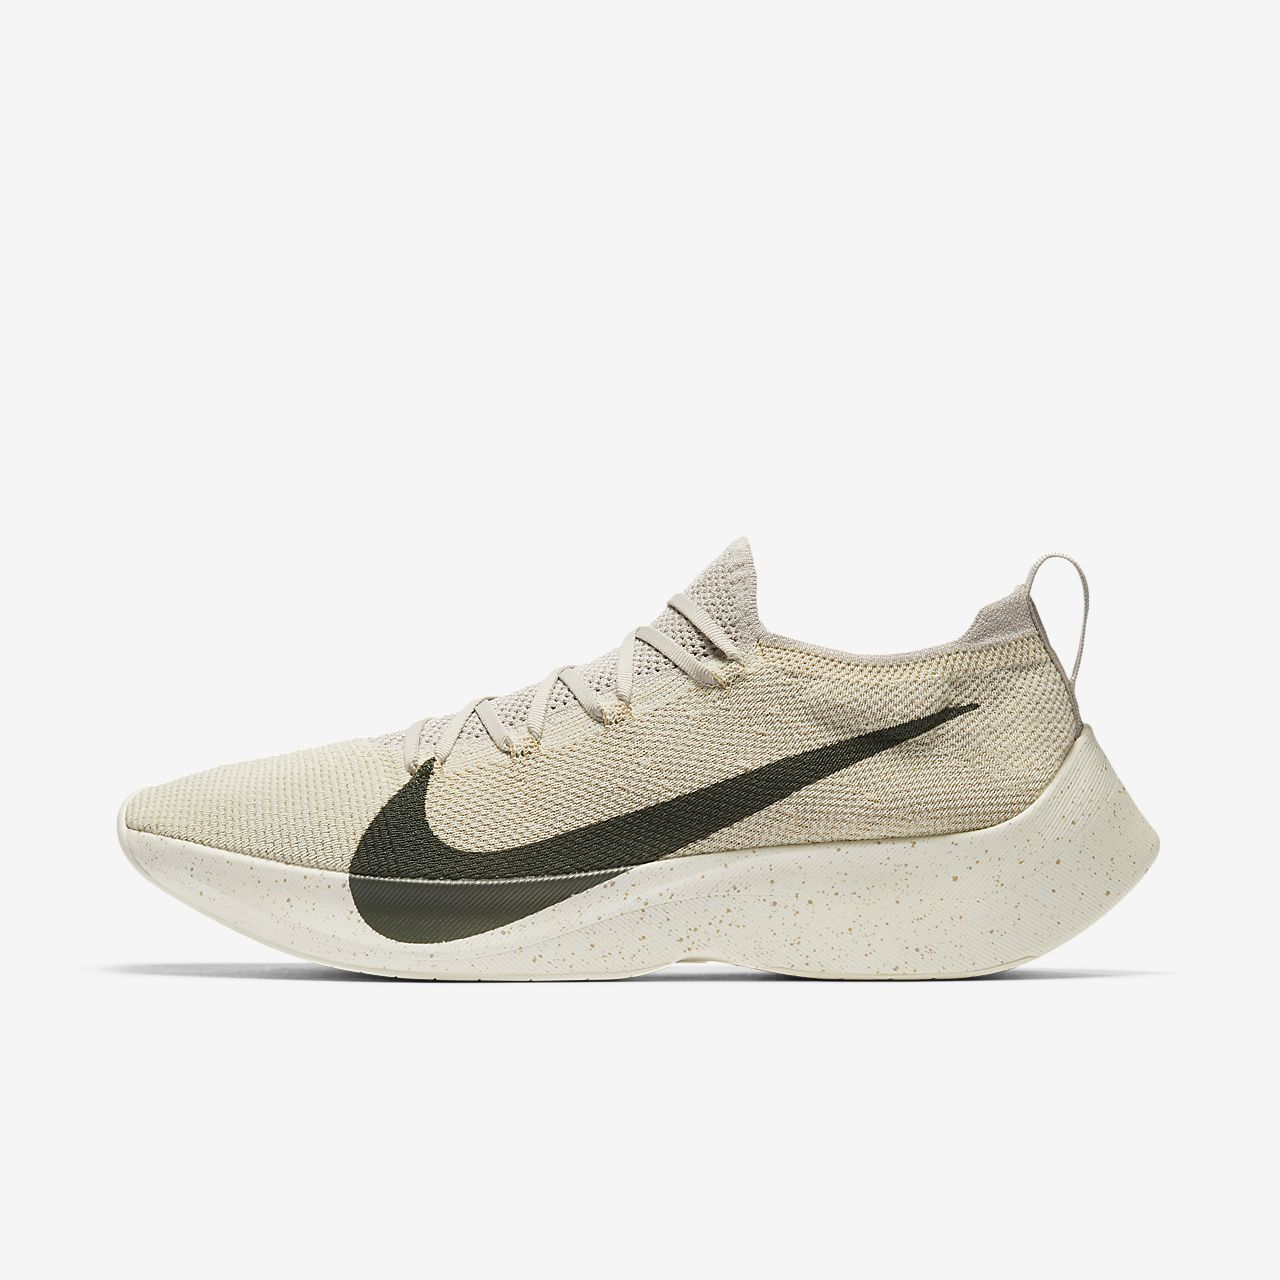 online store 67376 ead15 Chaussure Nike React Vapor Street Flyknit pour Homme